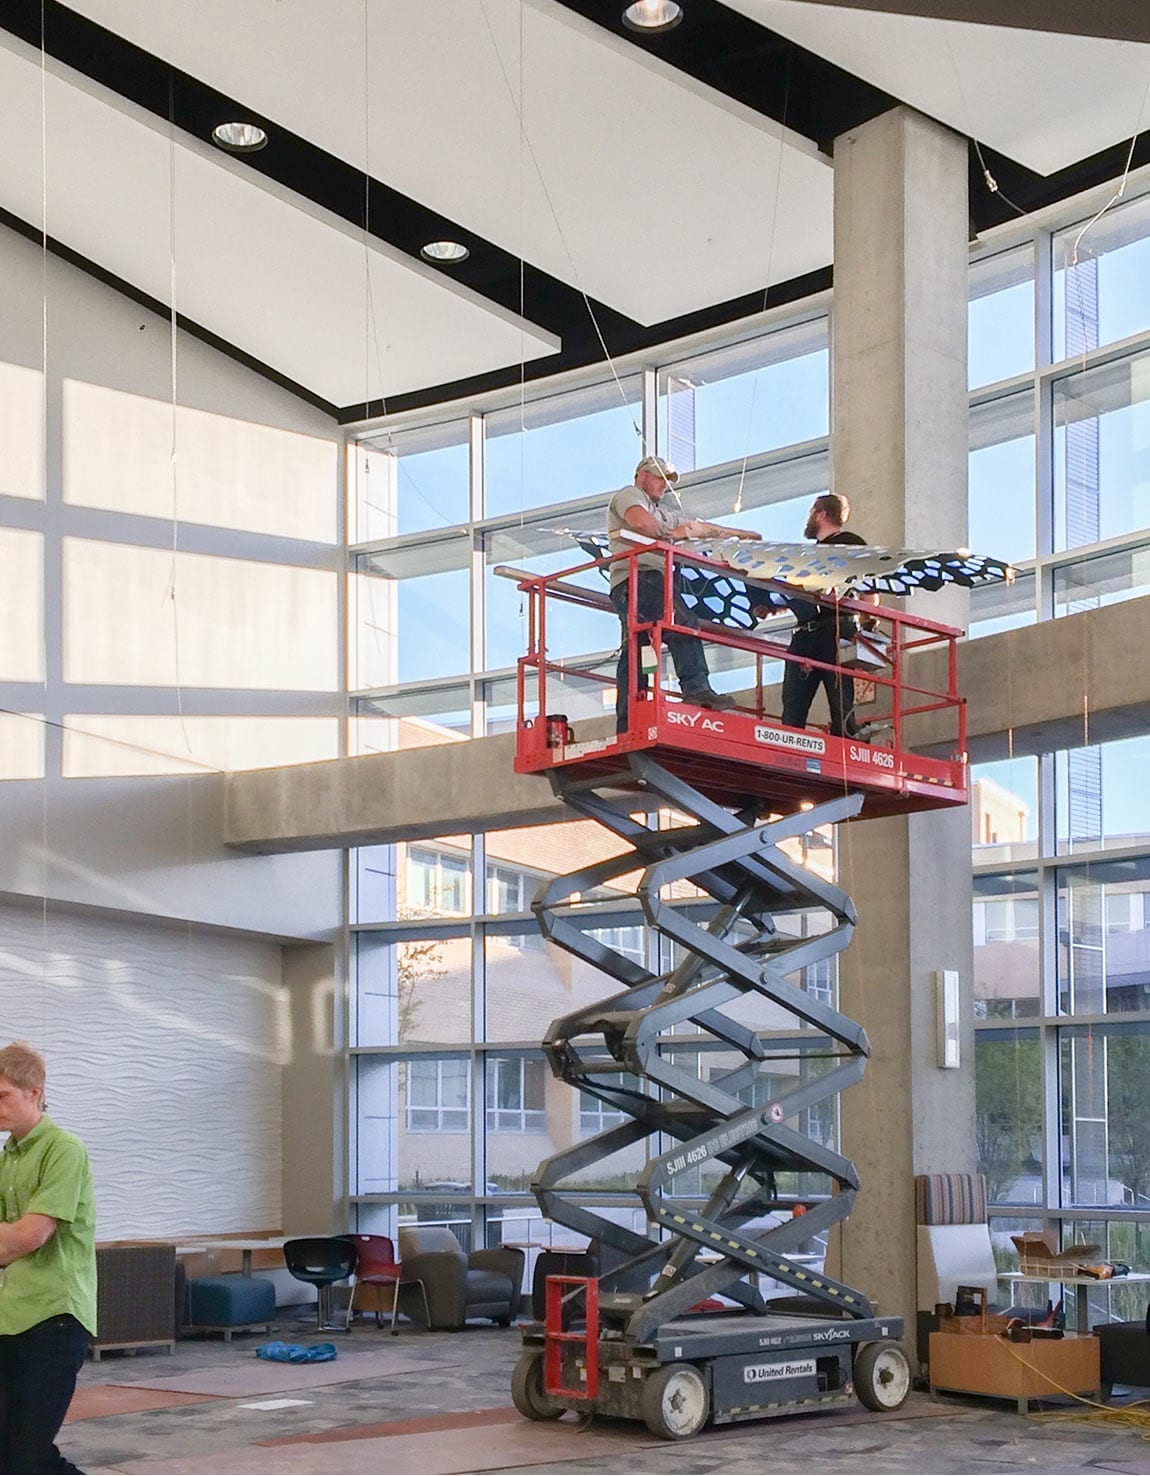 Zahner installers hang the panels using the cable system.